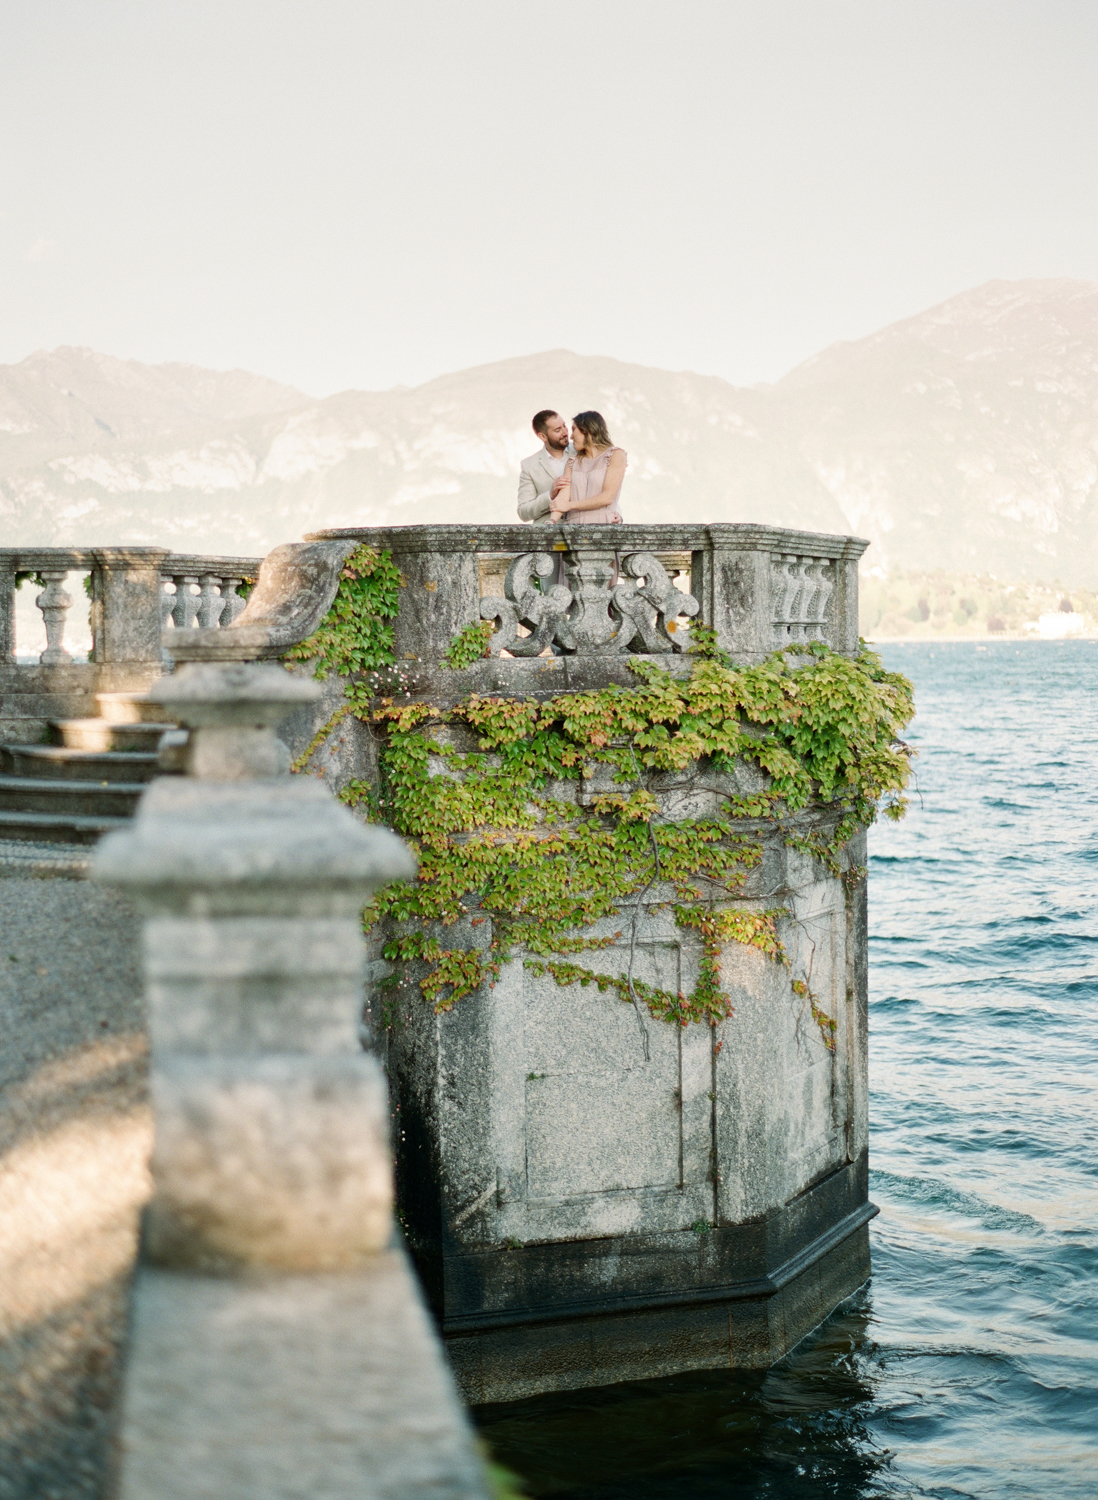 Lake_Como_wedding_photographer_nikol_bodnarova_lake_como_film_wedding_photographer_39.JPG